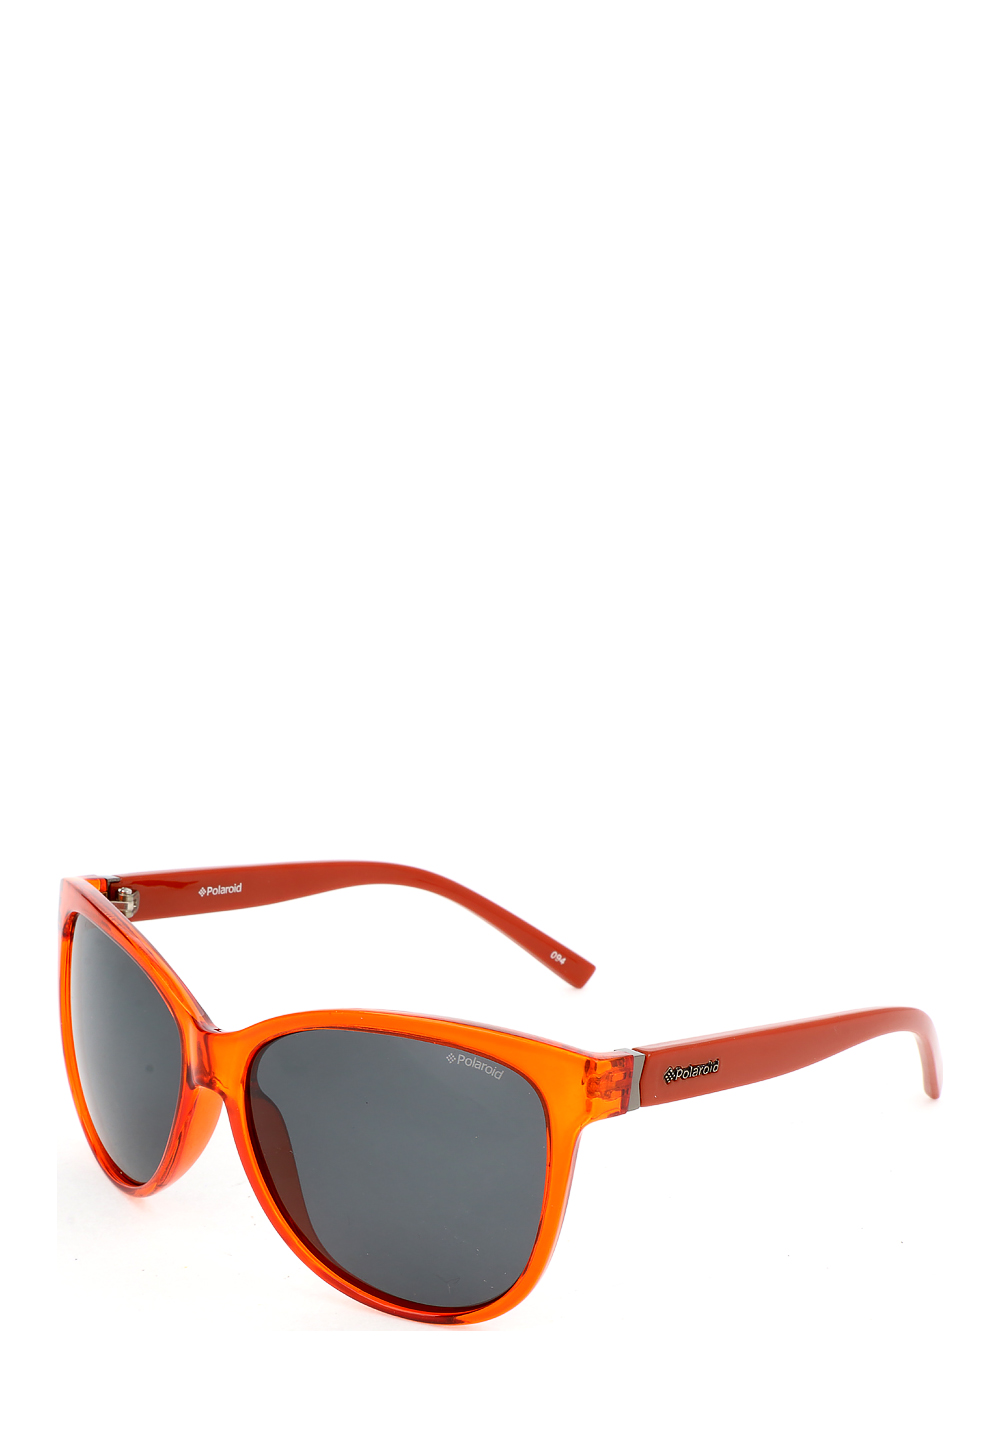 Sonnenbrille Pld4017/S, polarized, Uv400, orange